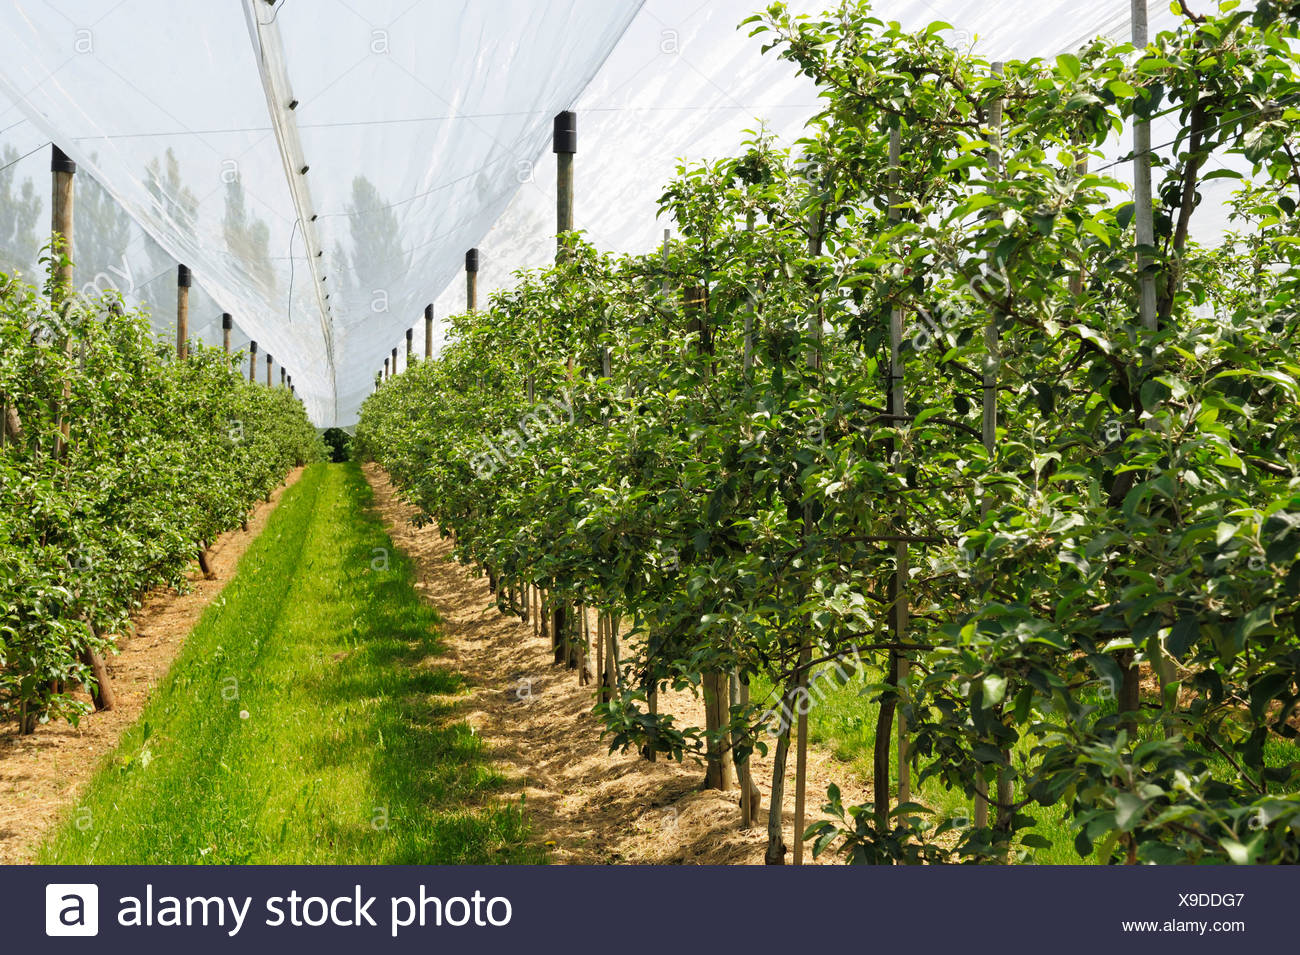 Pear orchard, fruit growing in Hagnau on Lake Constance, Baden-Wuerttemberg, Germany, Europe - Stock Image